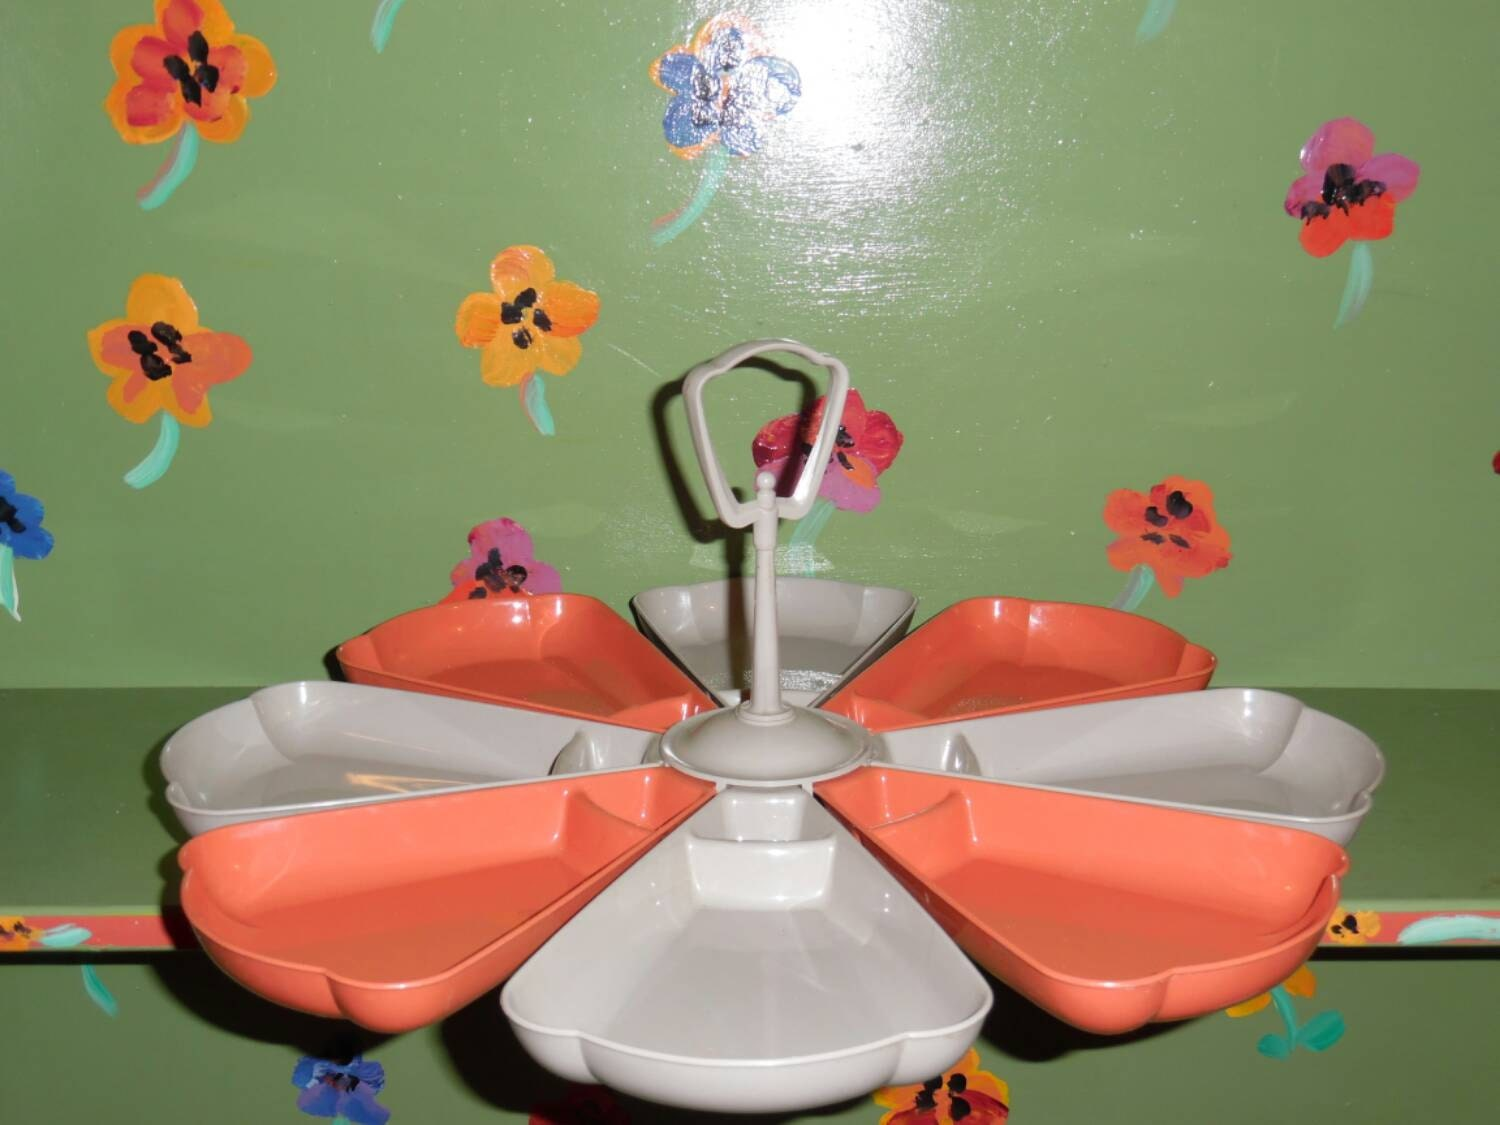 Plastic flower serving tray platter grey red orange modern for Modern kitchen table centerpiece